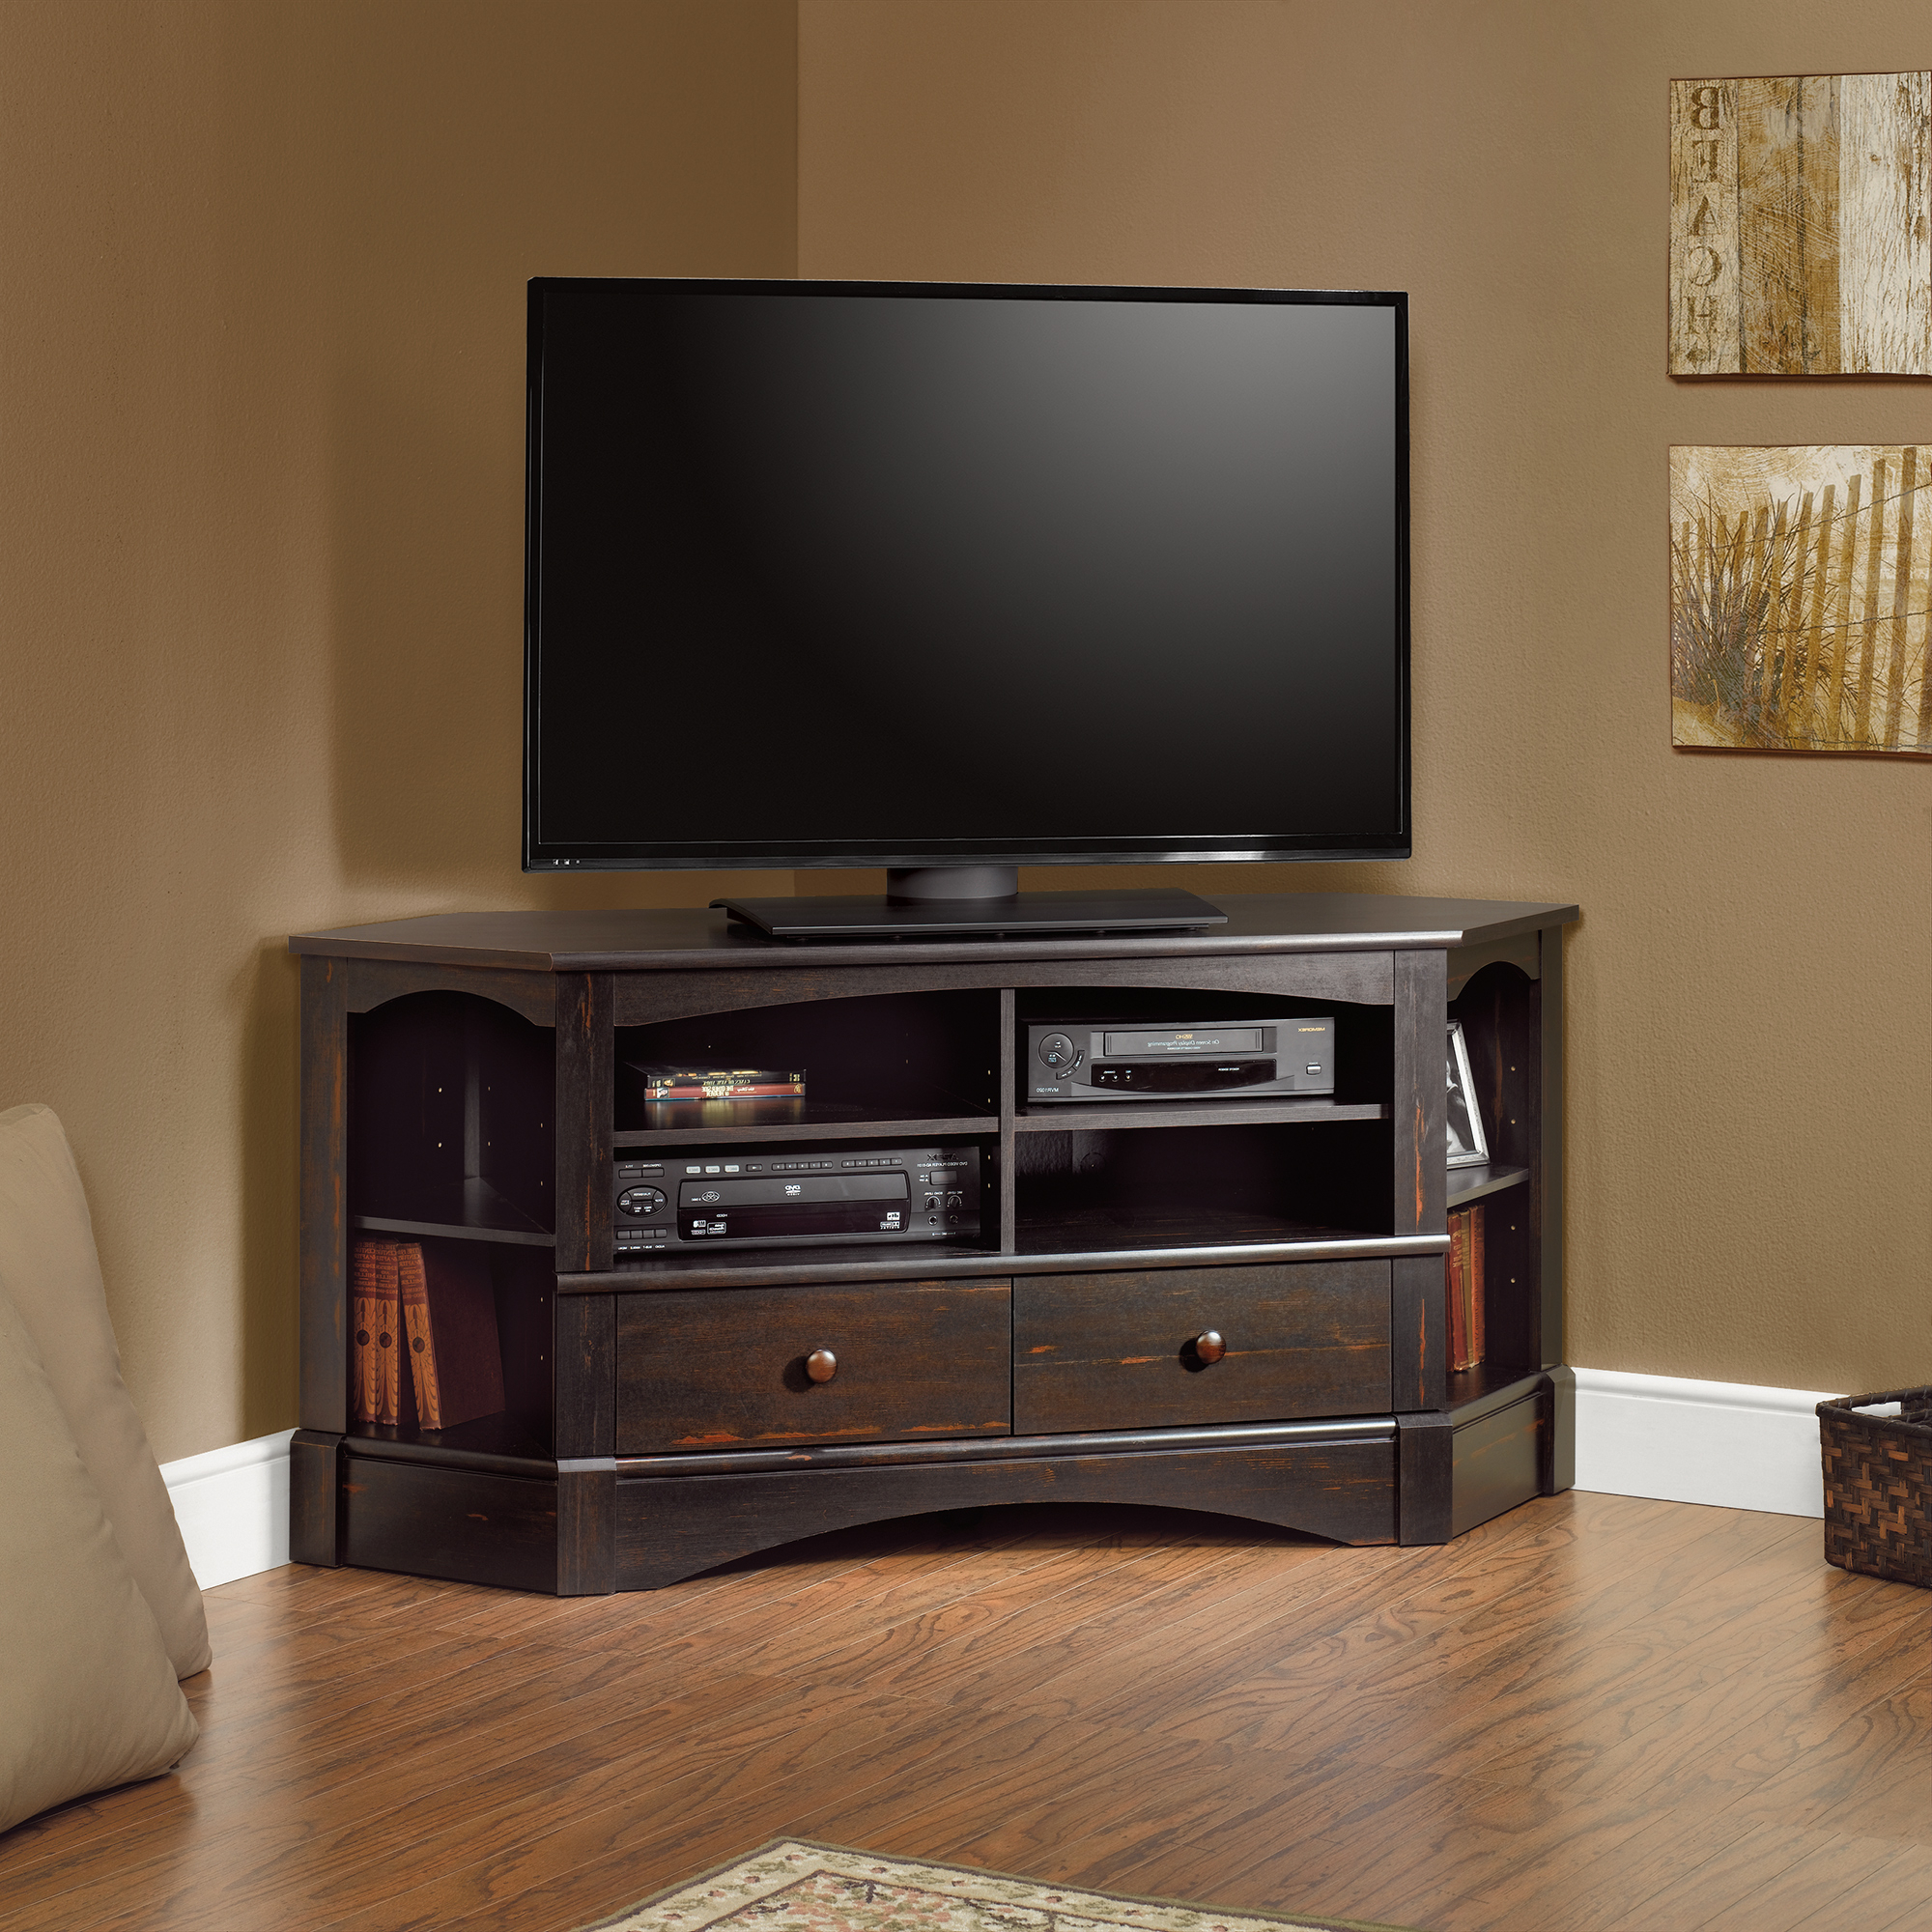 Corner Entertainment Credenza (View 3 of 20)